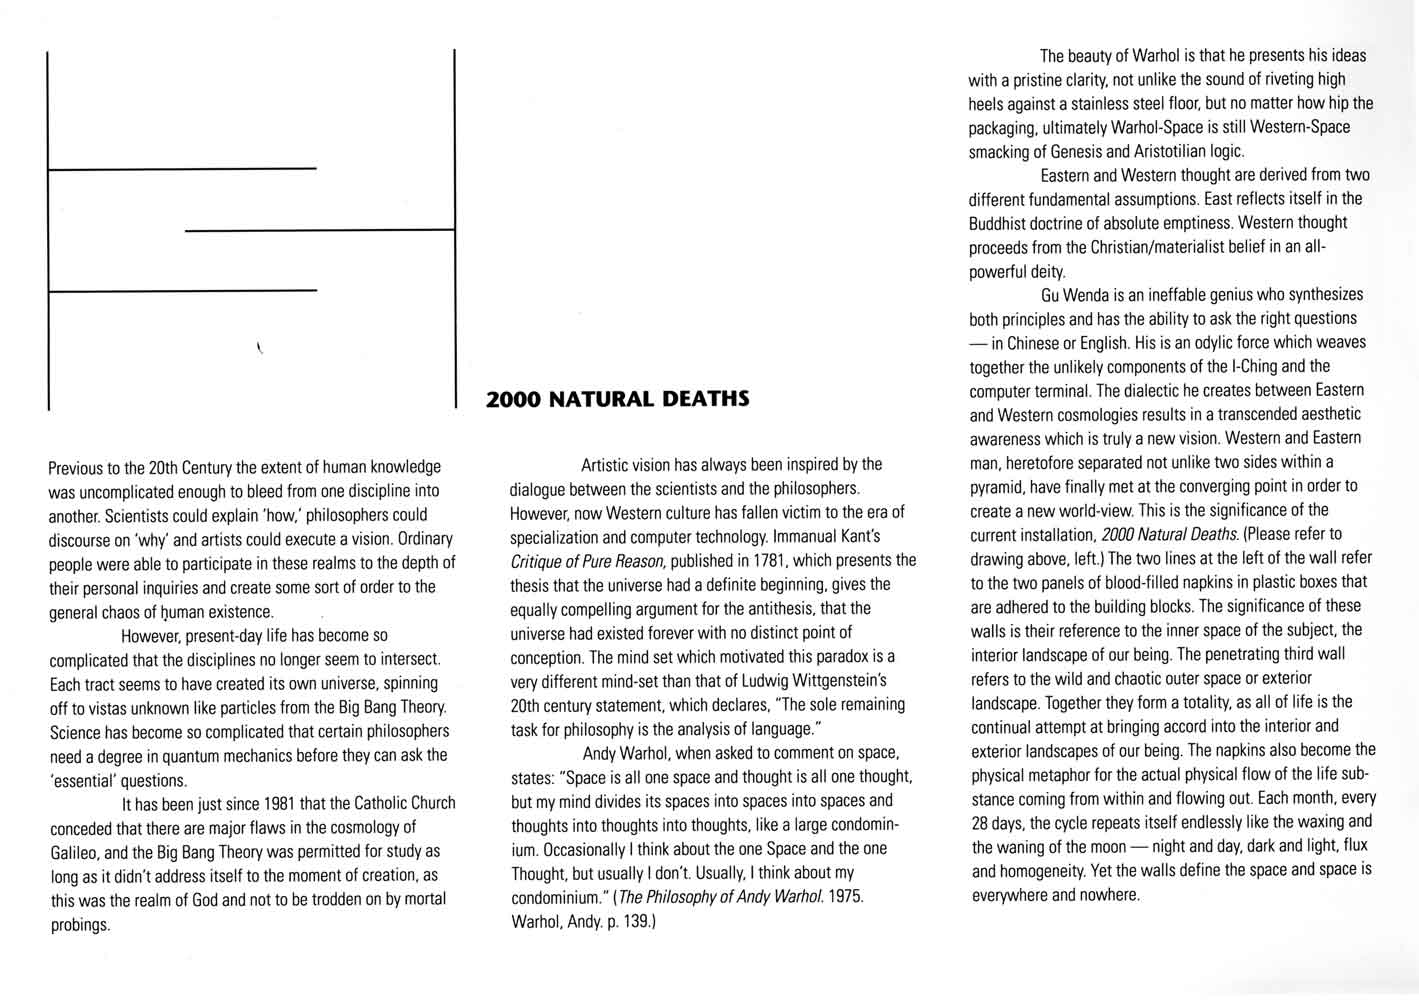 2000 Natural Deaths, catalog, pg 1